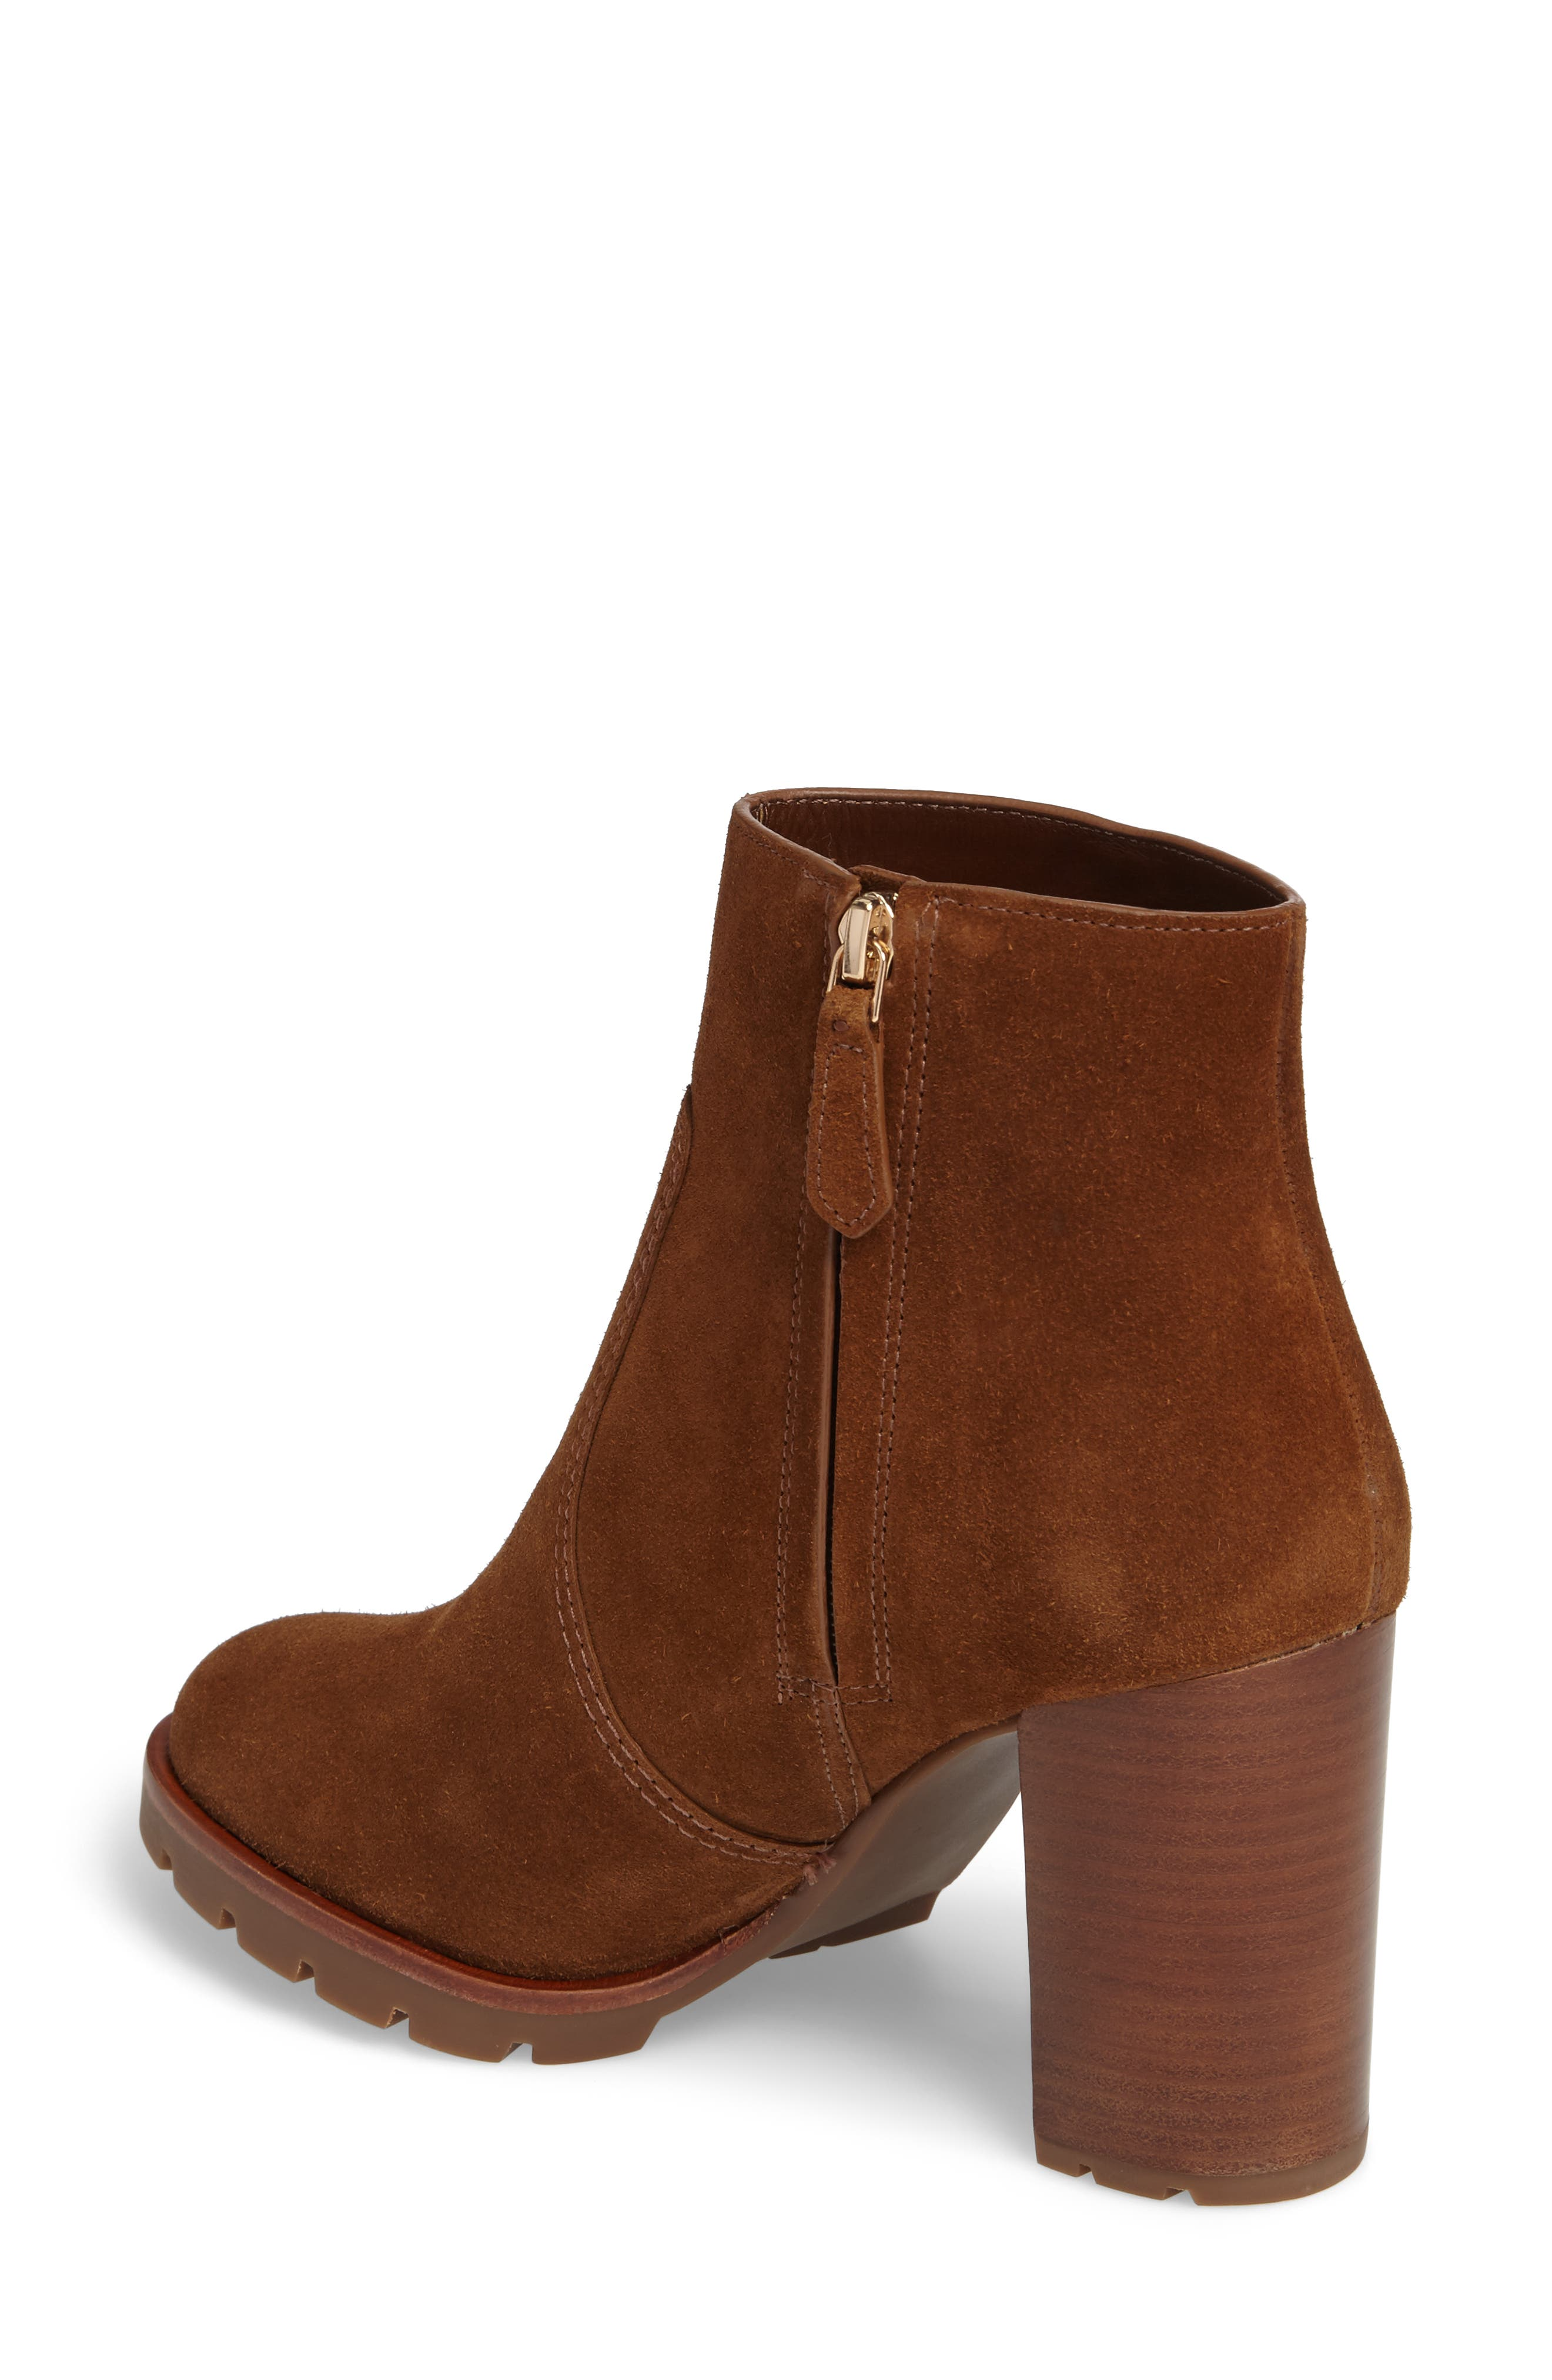 Sofia Lugged Logo Charm Bootie,                             Alternate thumbnail 3, color,                             Festival Brown